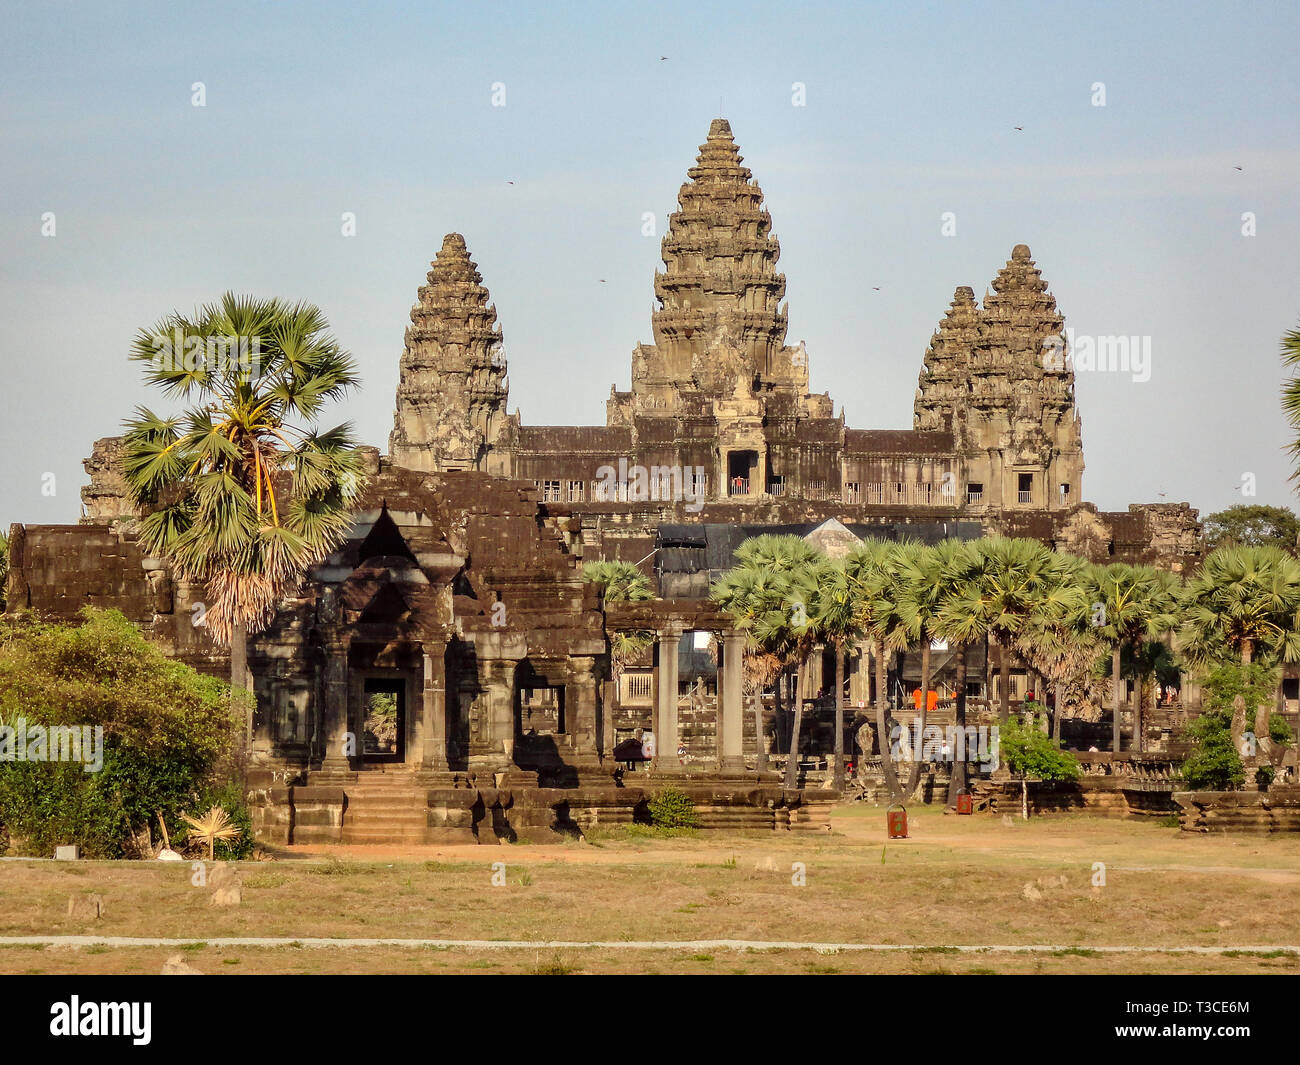 Temple at Angkor Wat. Angkor Wat is a temple complex in Cambodia and one of the largest religious monuments in the world, Stock Photo